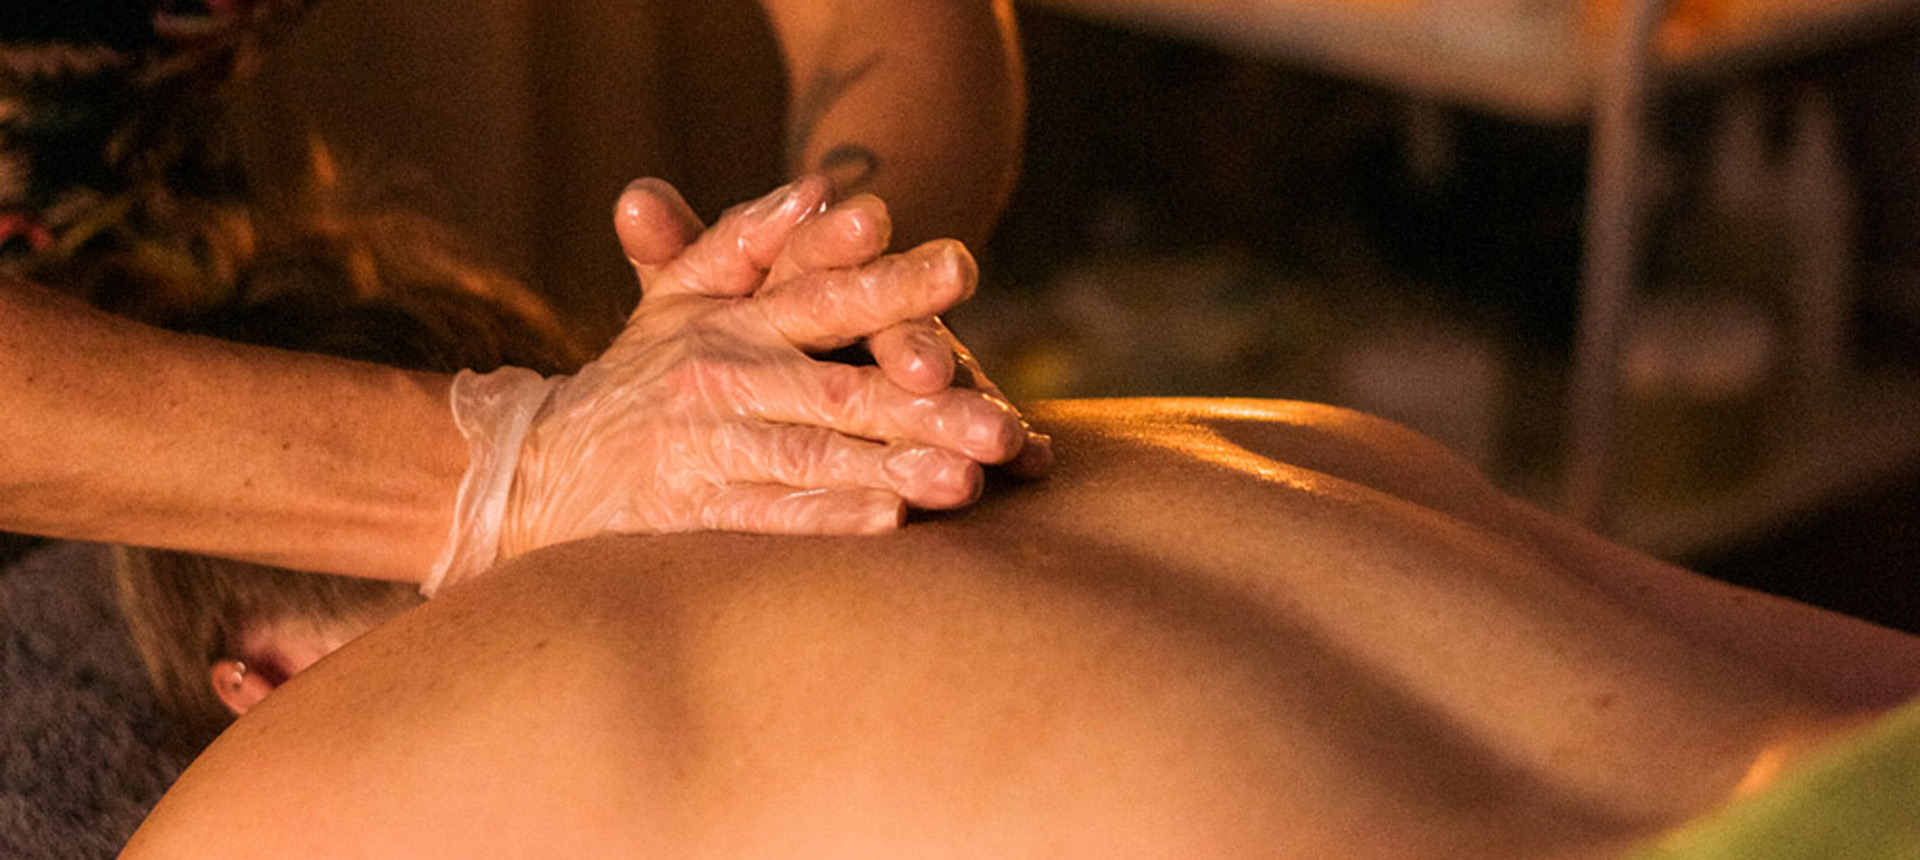 body relaxation